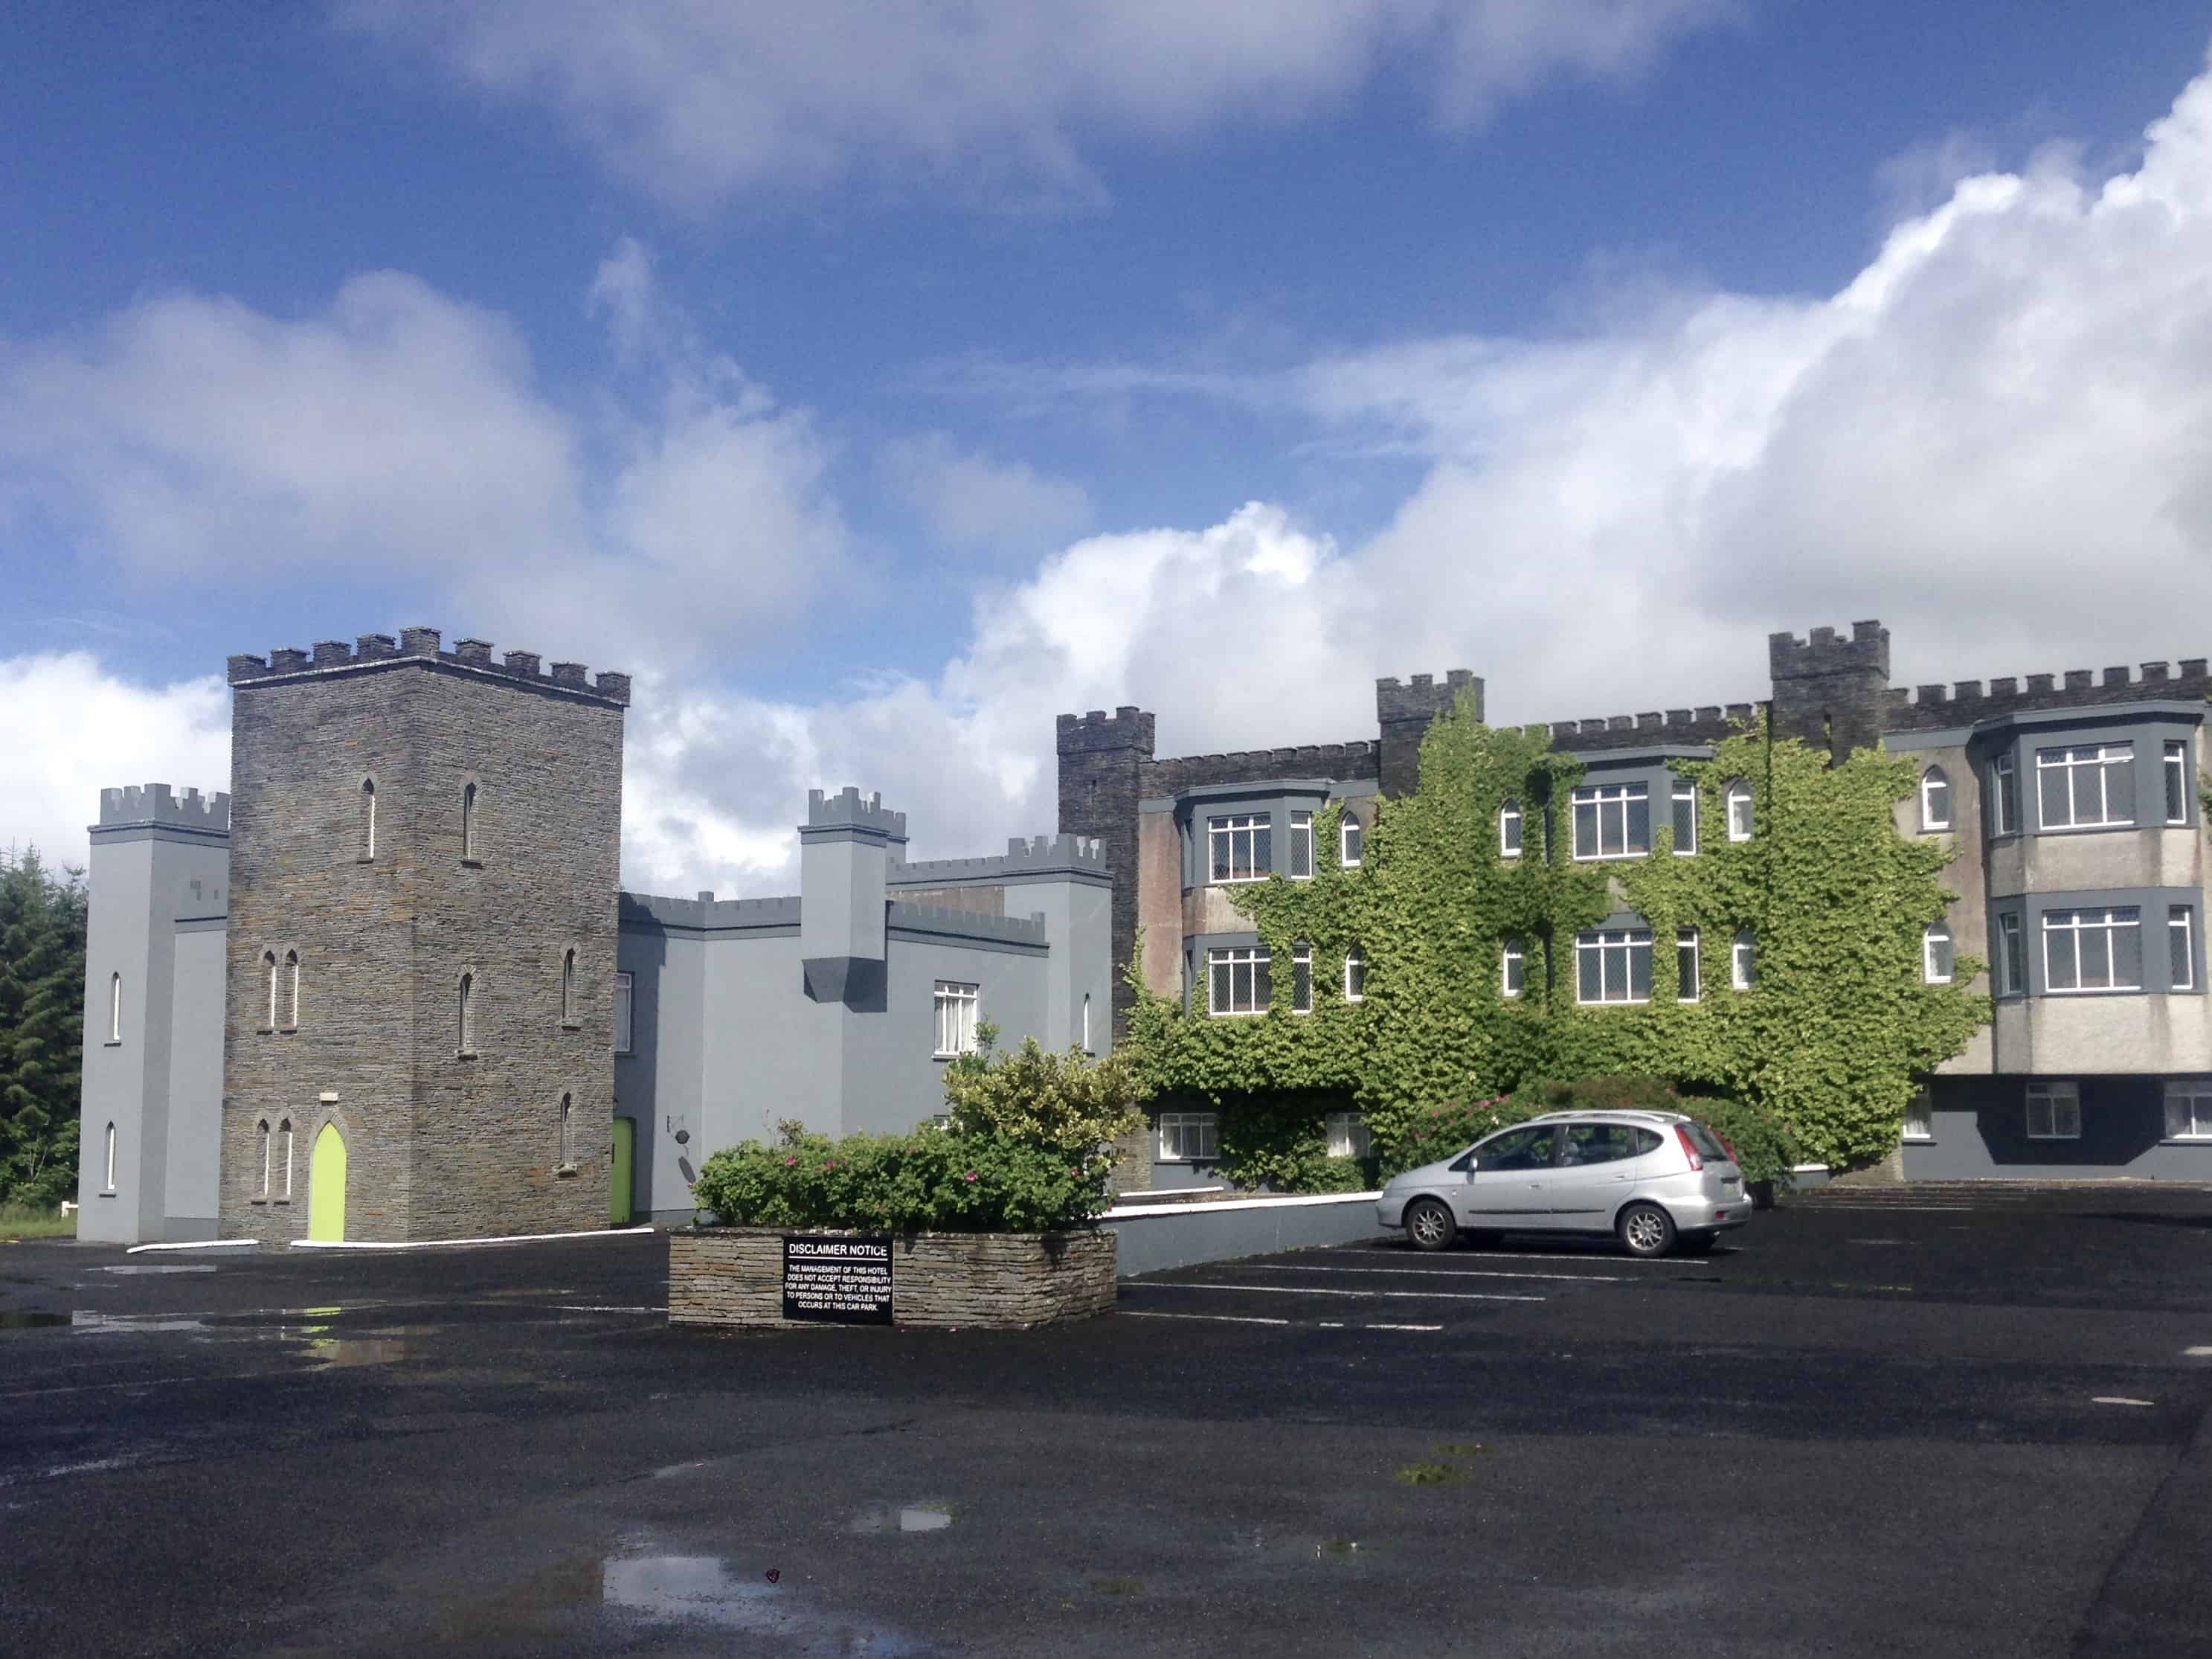 Castle Hotel in Ireland - one of the places we camped near while hitchhiking